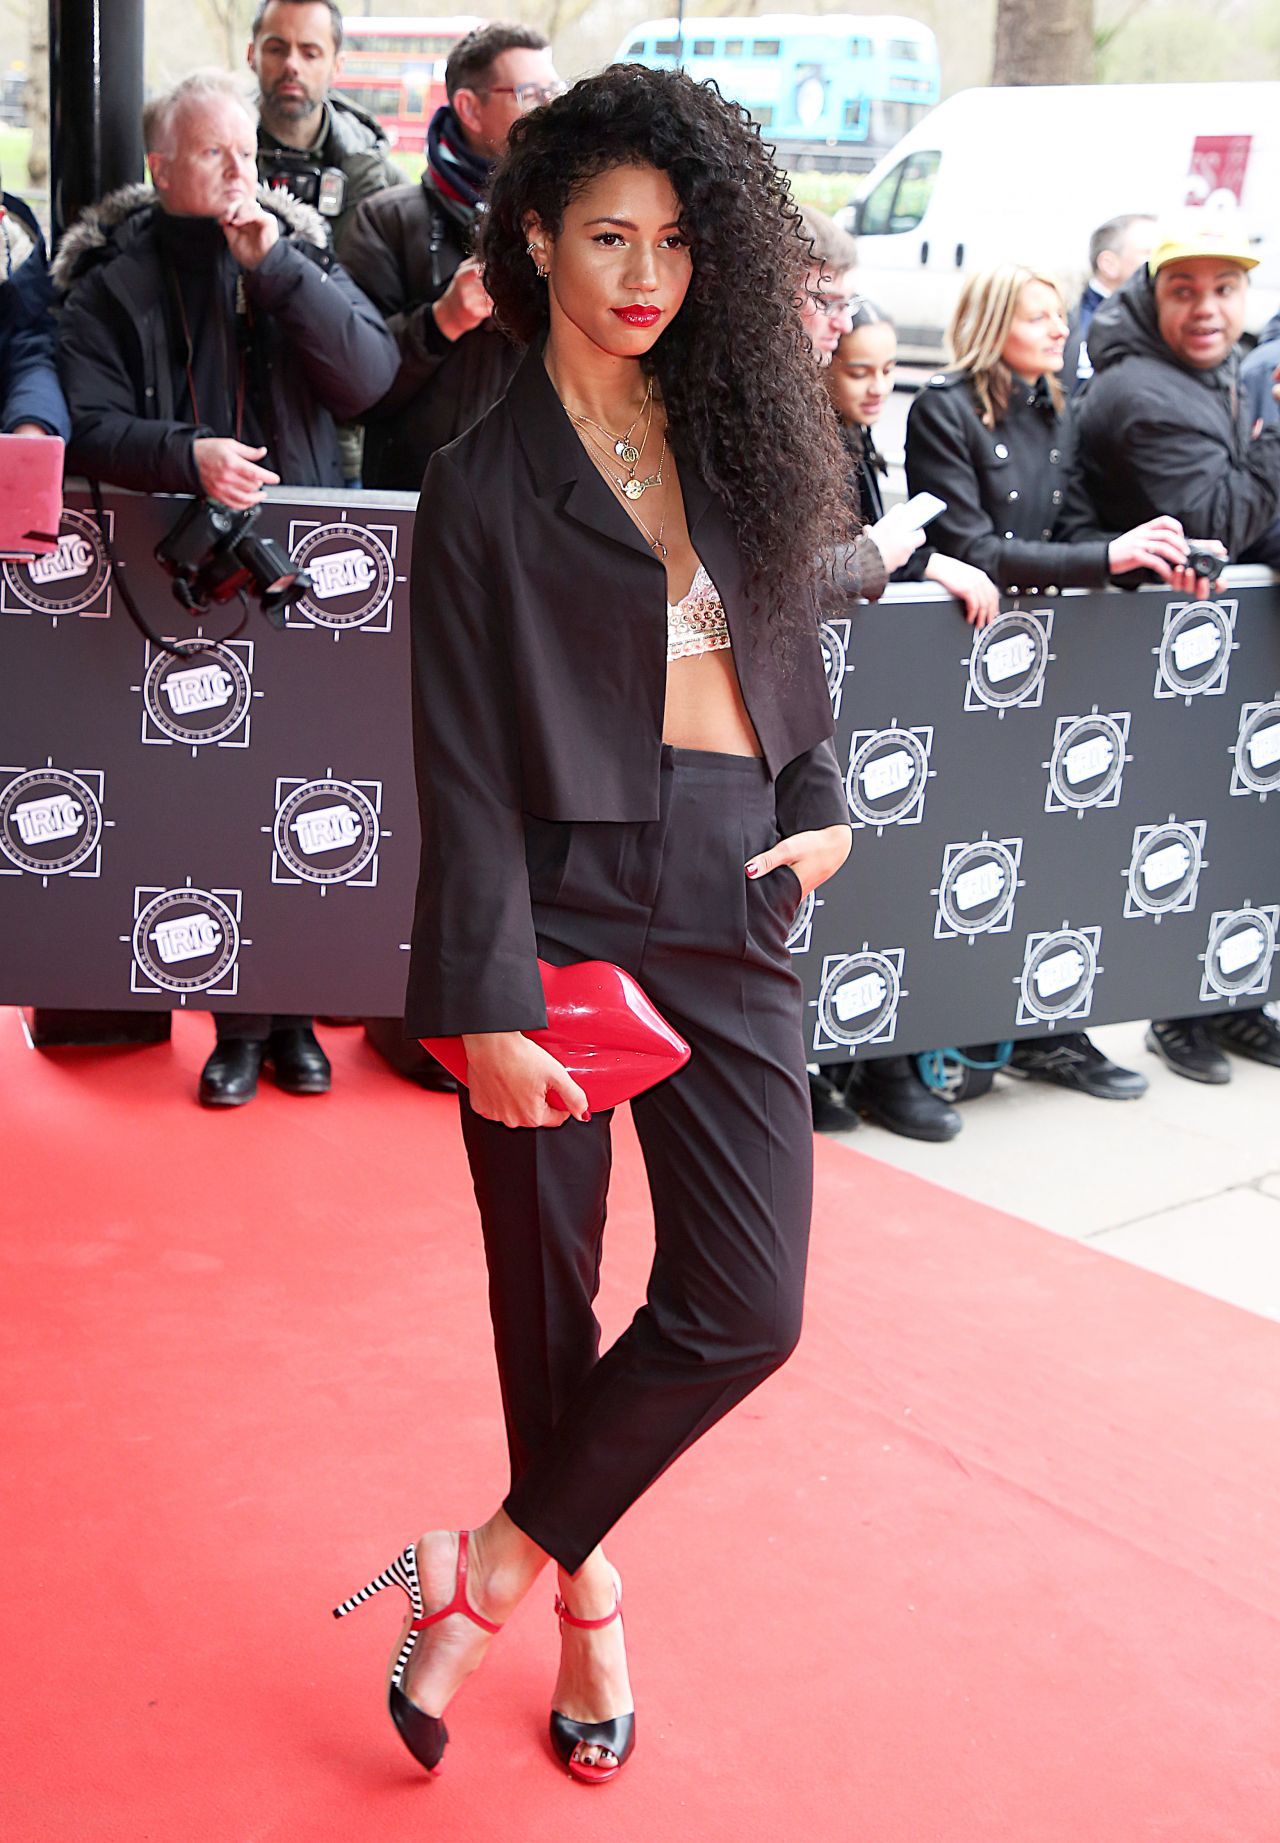 Image Result For Vick Hope